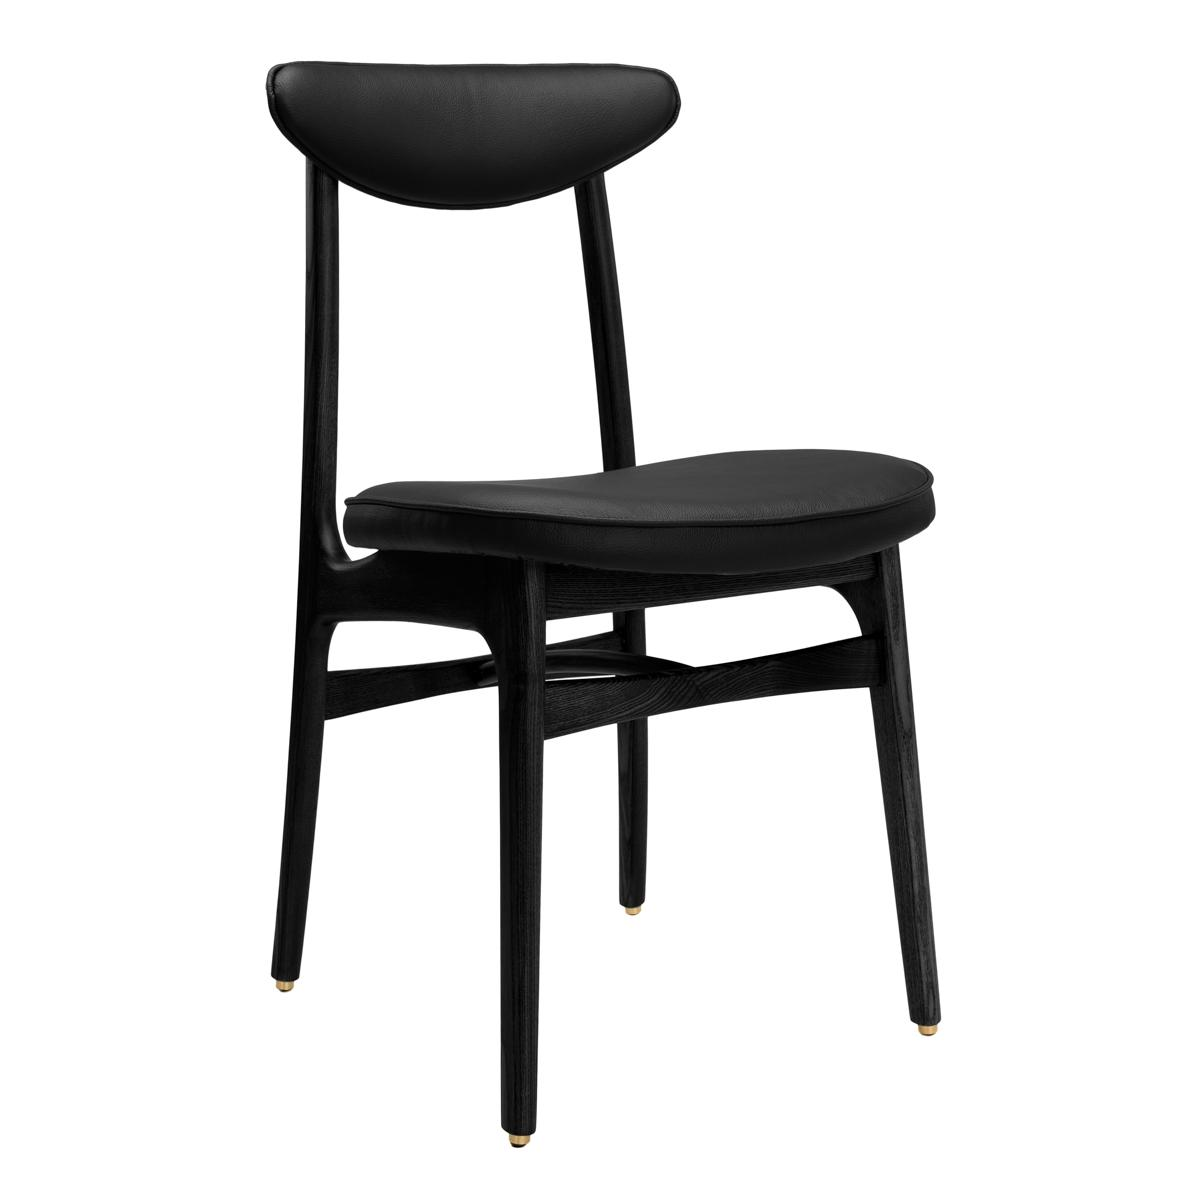 Enjoyable Leather Dining Chair Alphanode Cool Chair Designs And Ideas Alphanodeonline